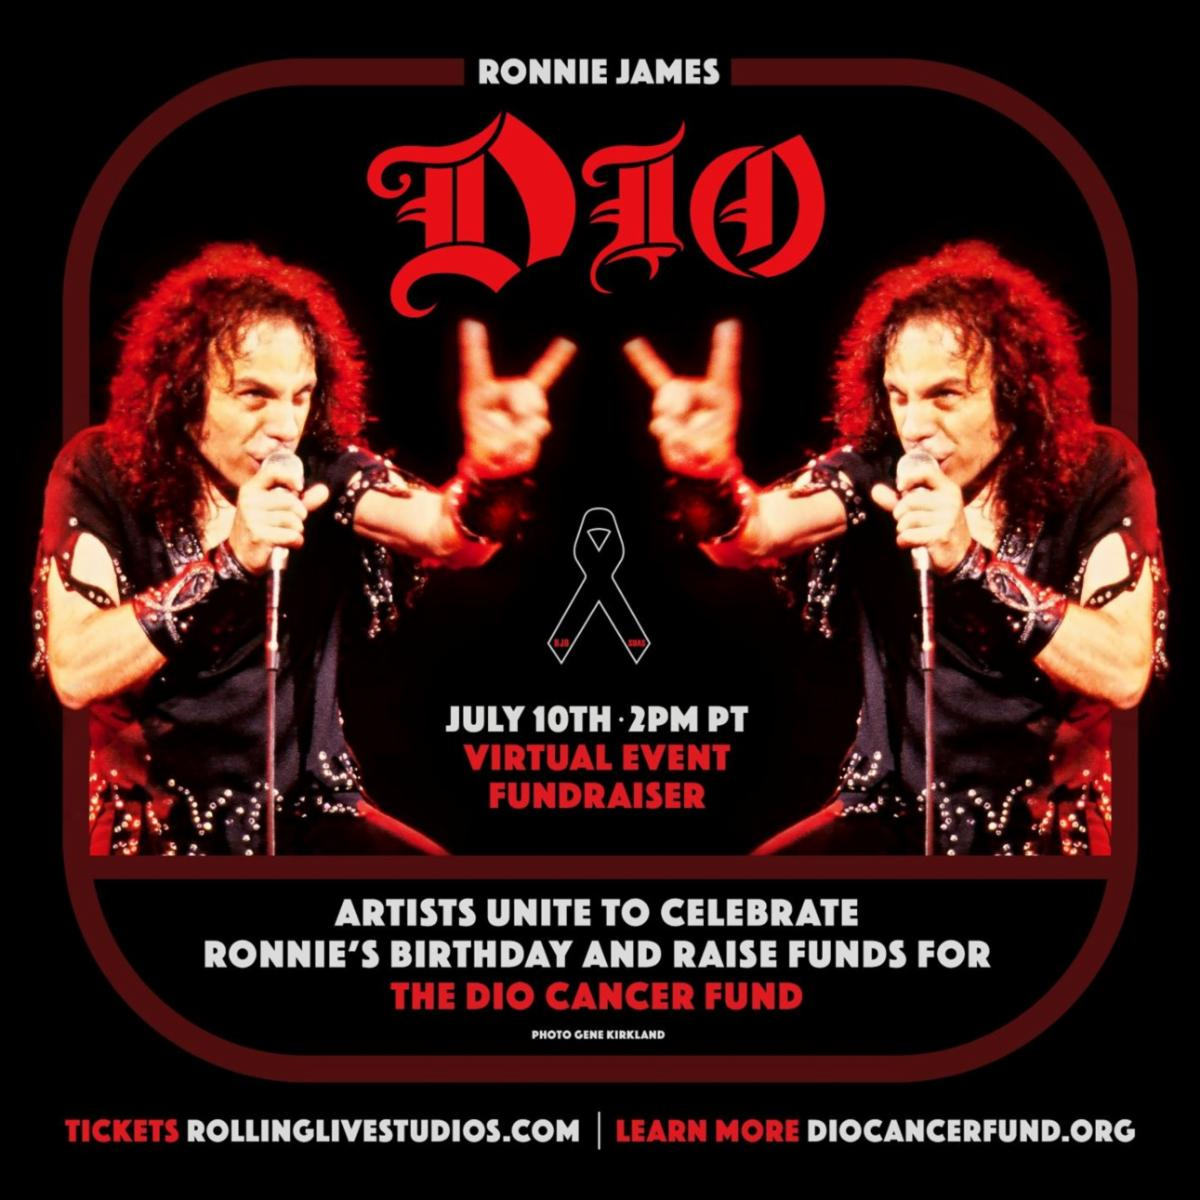 Ronnie James Dio's Birthday Celebrated July 10 with Star-Studded Global Virtual Fundraiser